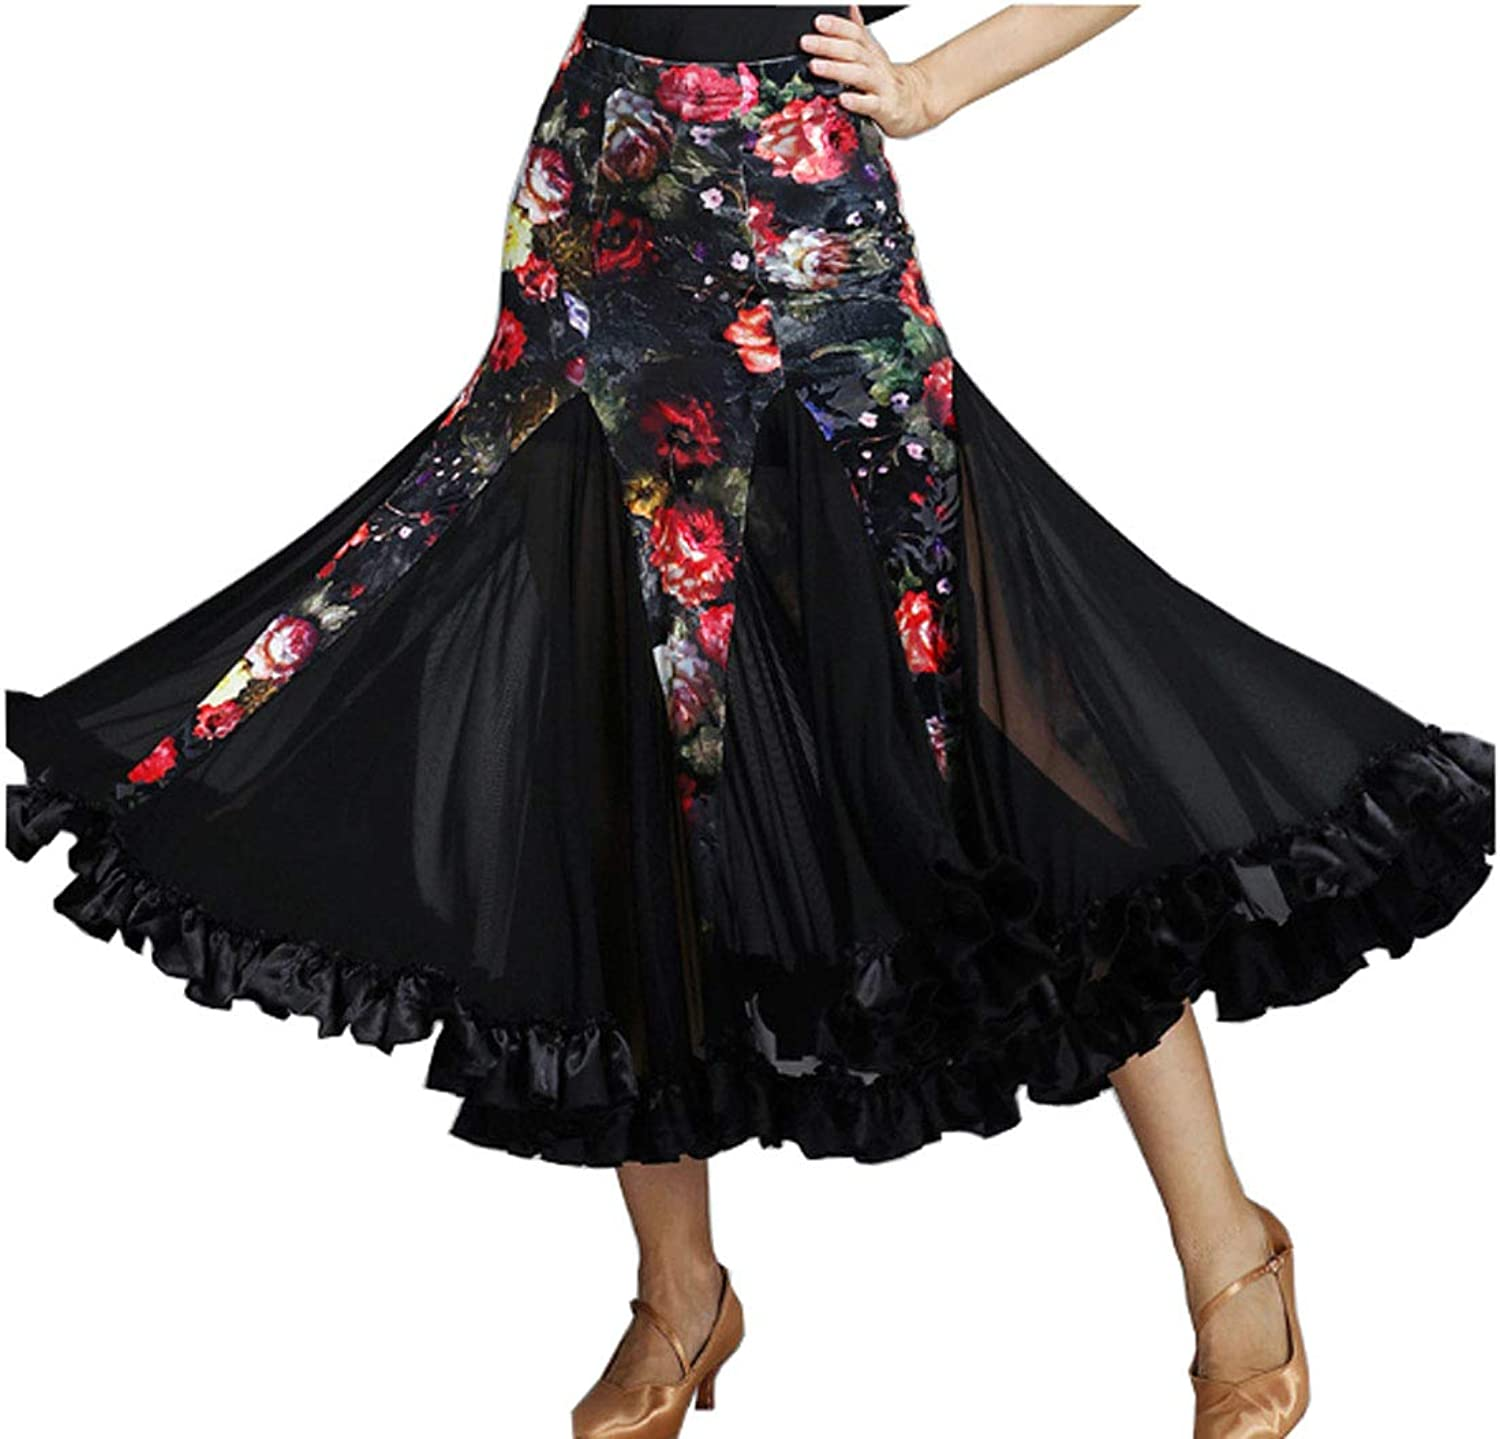 CHAGME Modern Dance Skirt Big Swing Skirt Velvet Bag Hip Latin Skirt Tango Dress